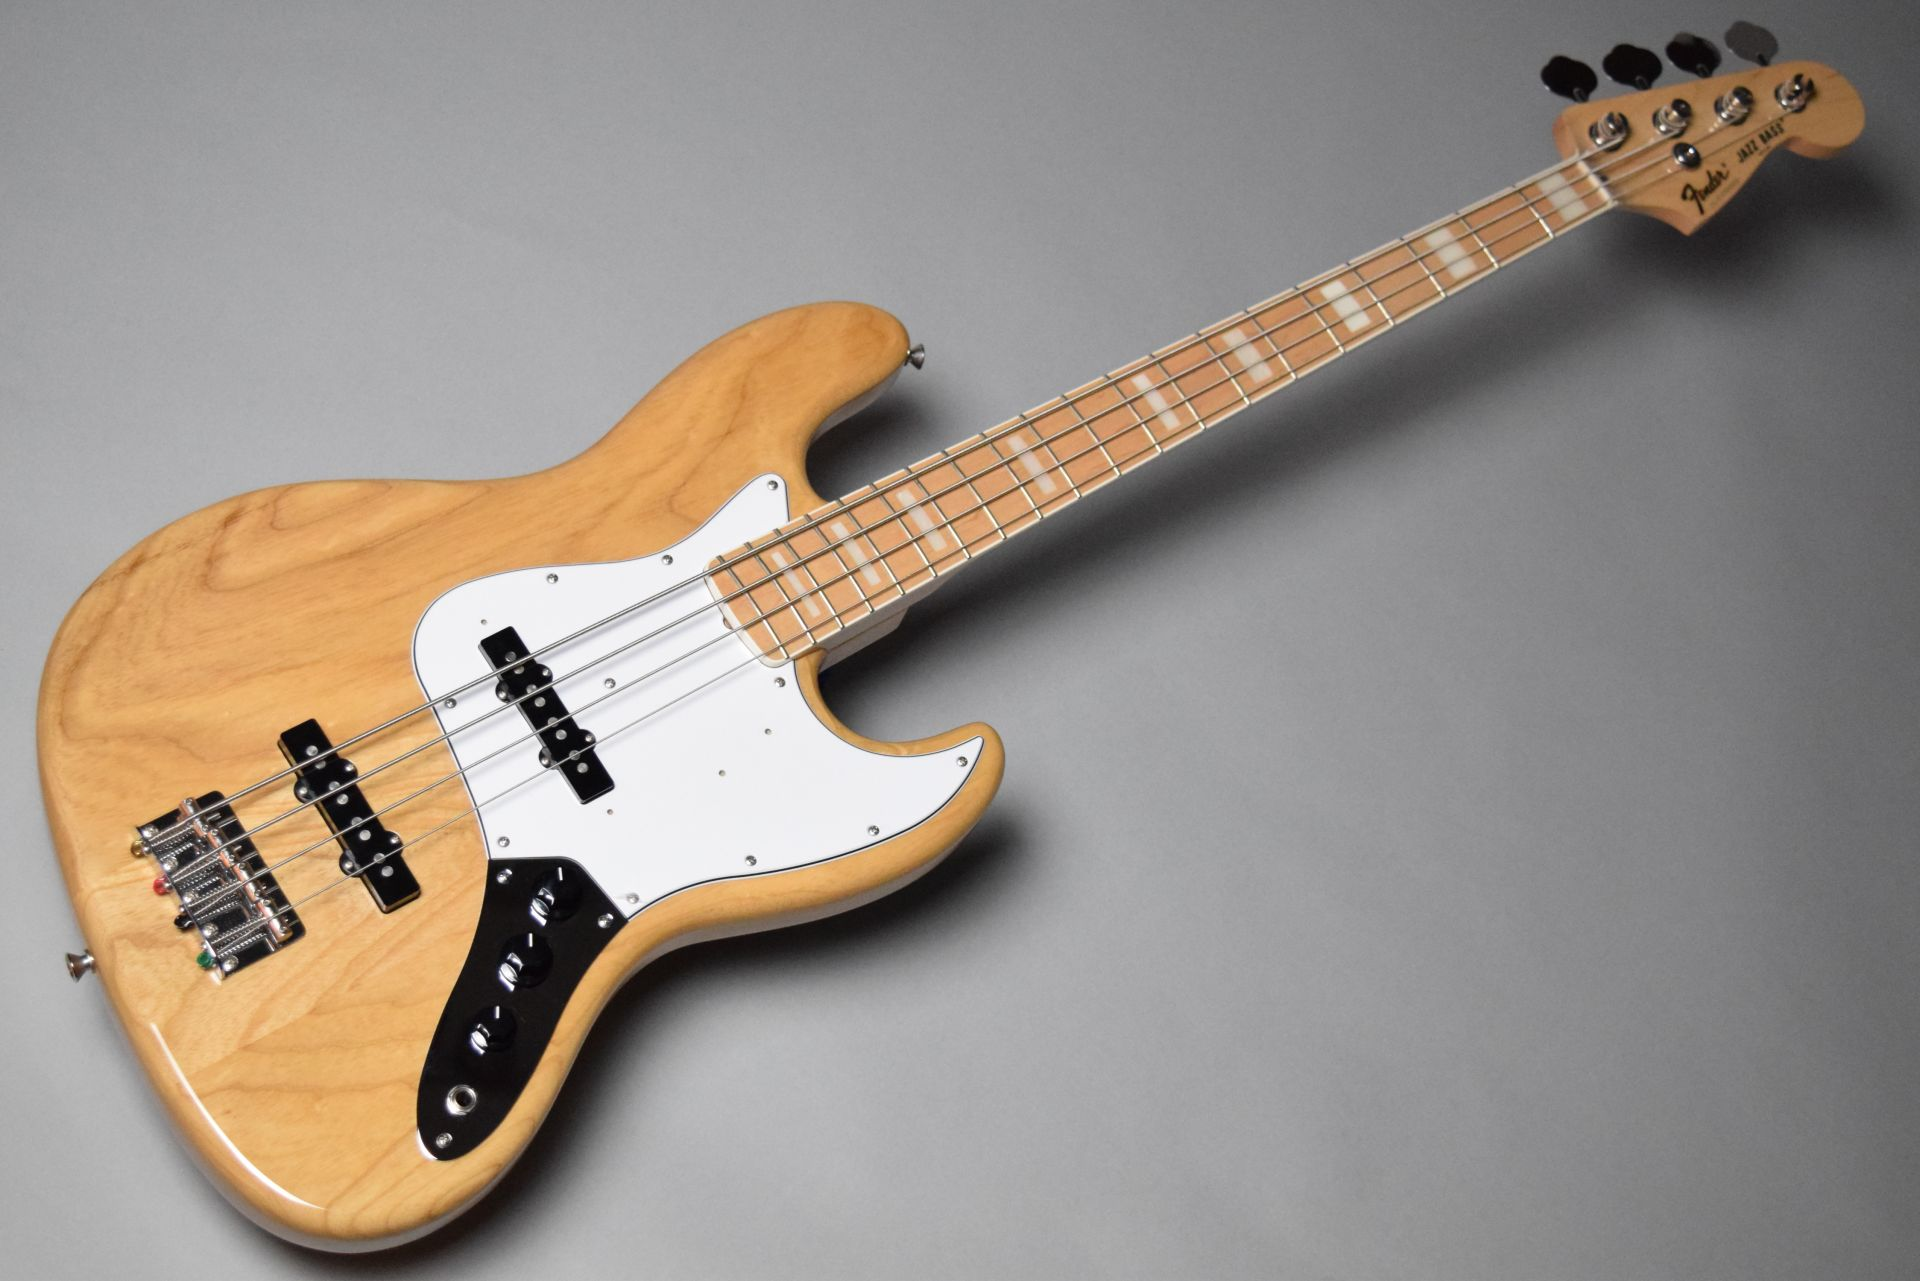 Japan Exclusive Classic 70s Jazz Bass Nat/Mのボディトップ-アップ画像